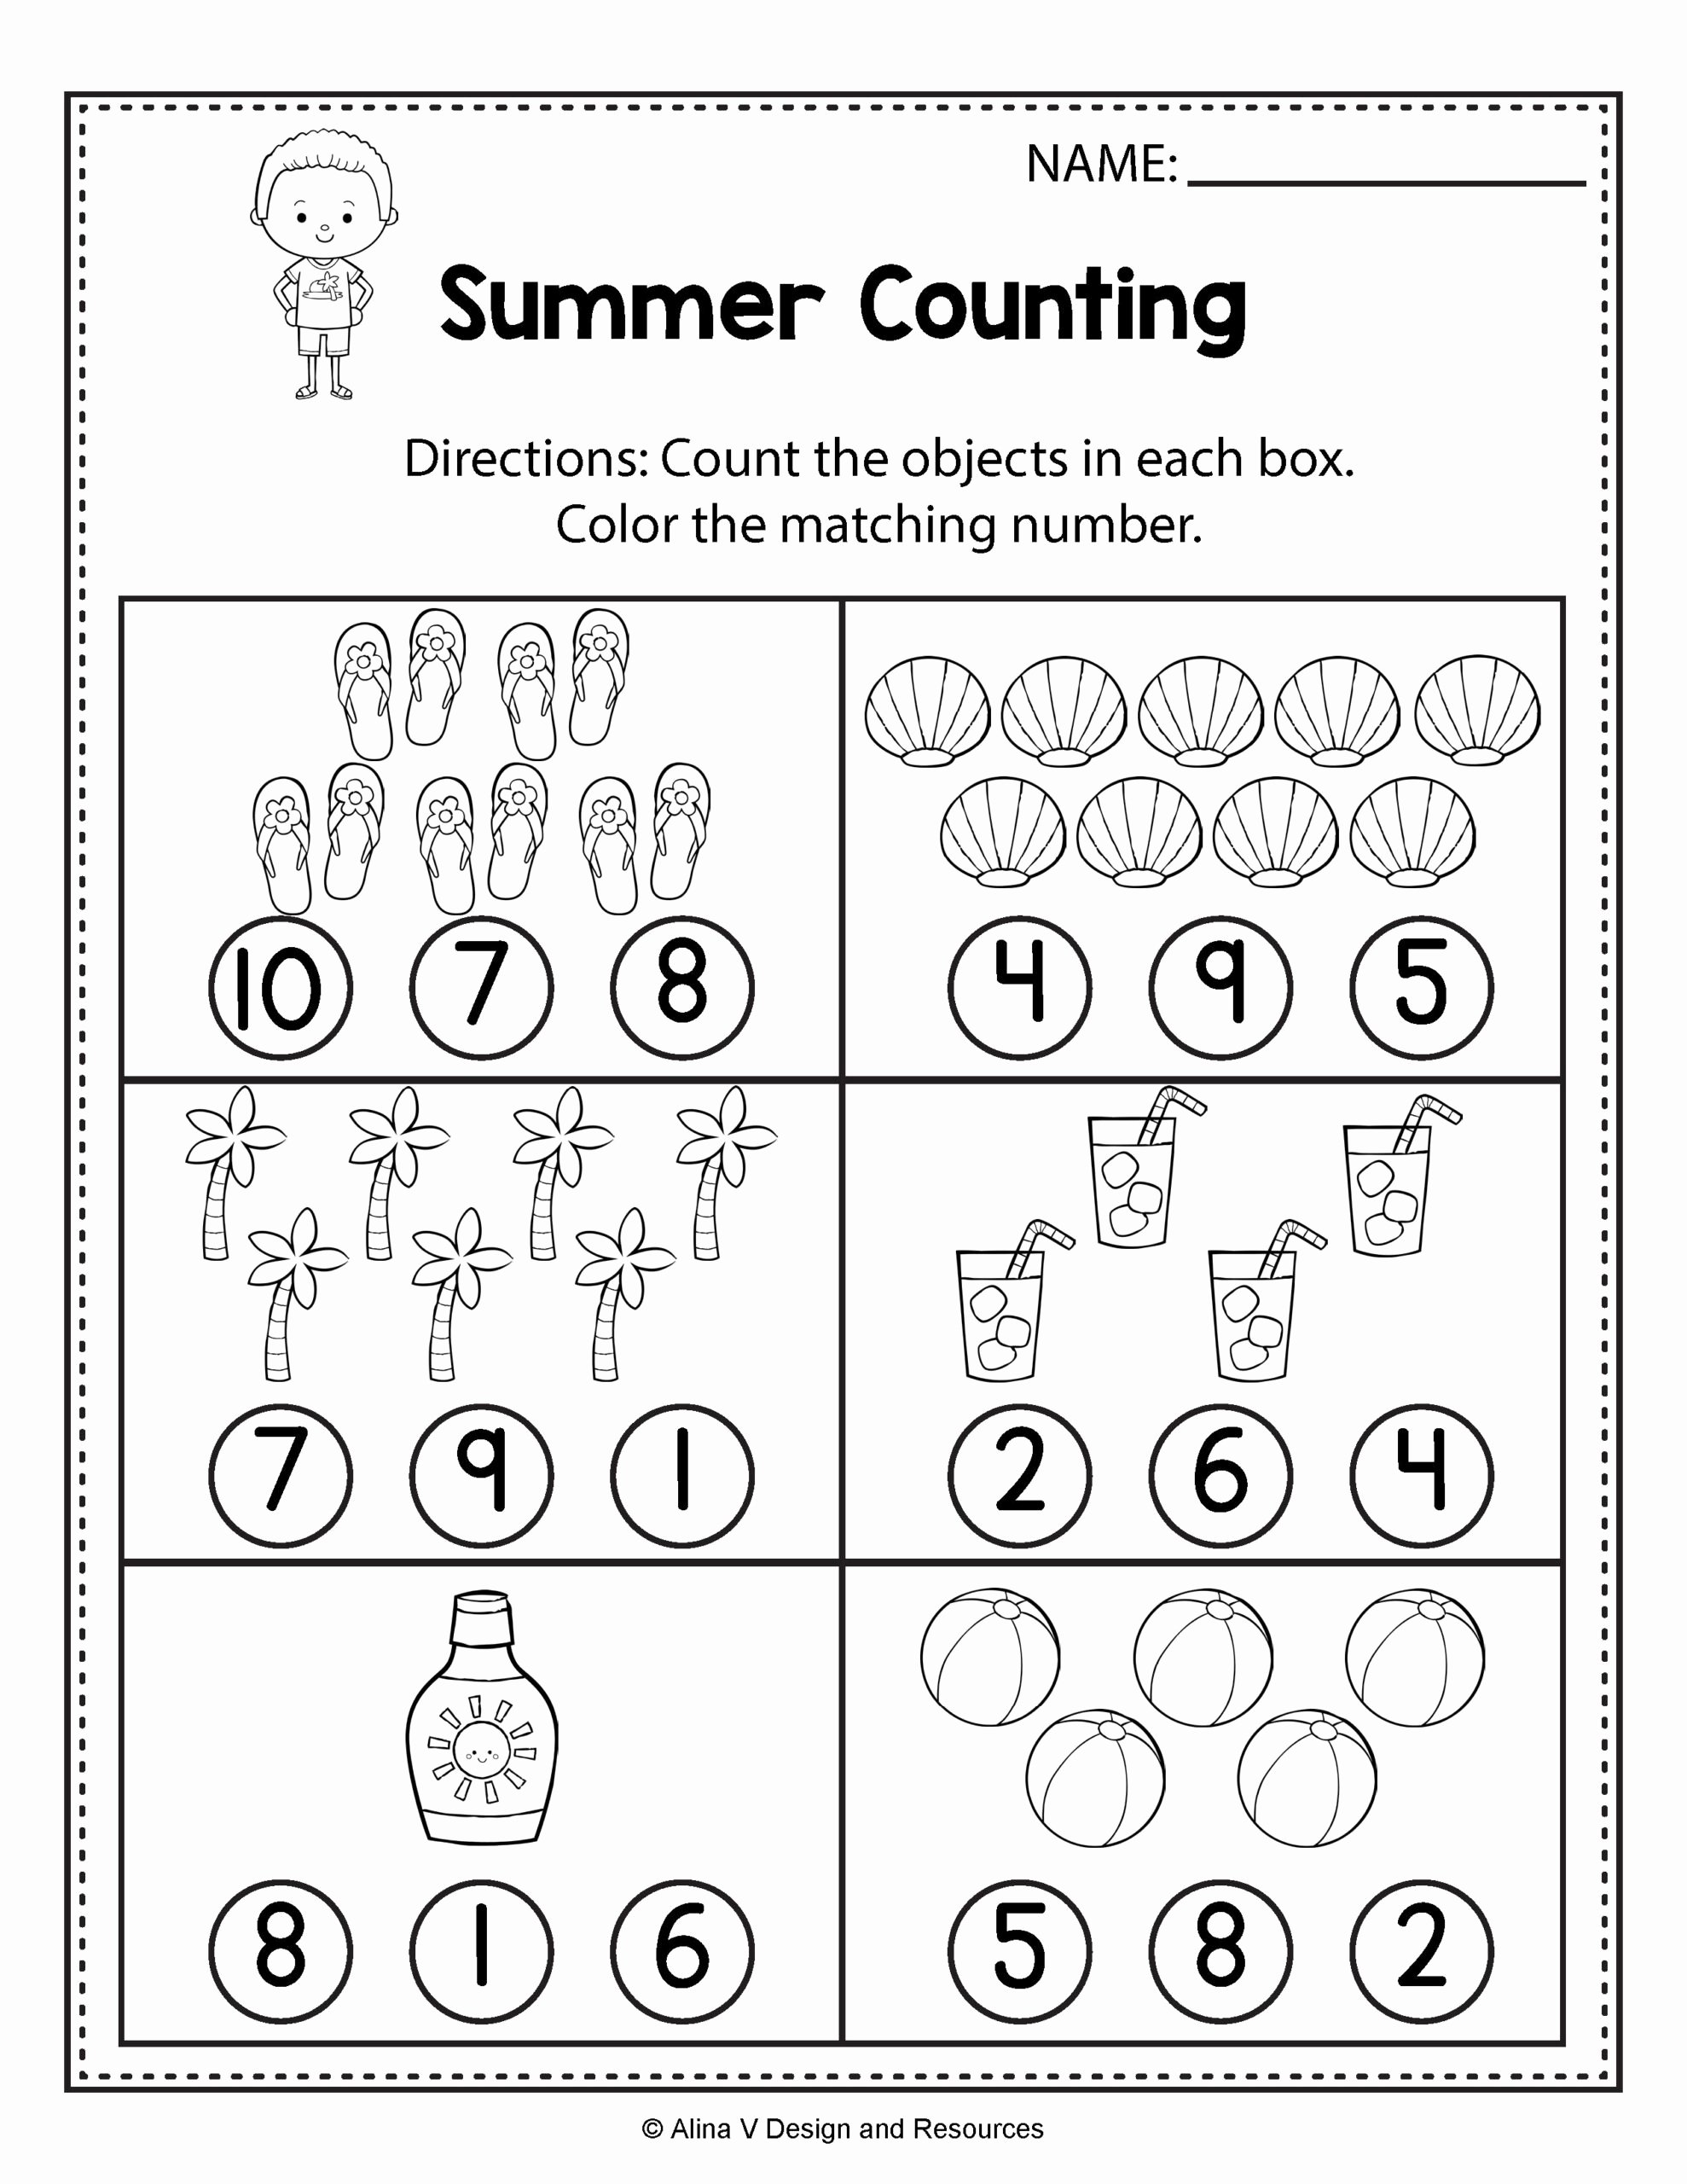 Counting Worksheets for Preschoolers Free Counting Worksheets Summer Math and Activities for Preschool